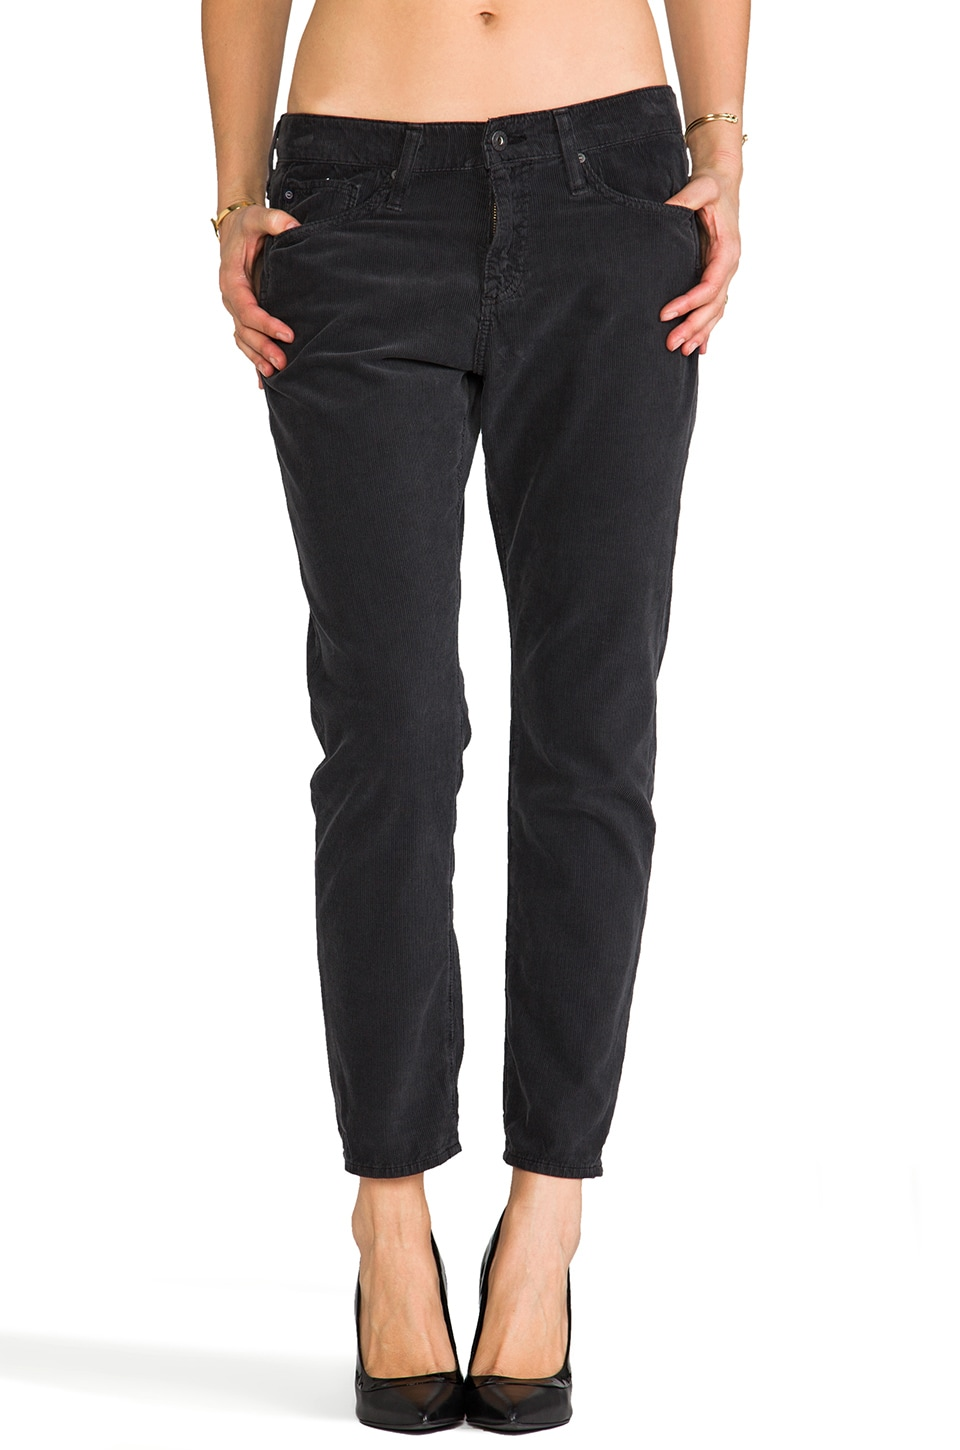 AG Adriano Goldschmied The Beau Slouchy Skinny Cord in Charcoal